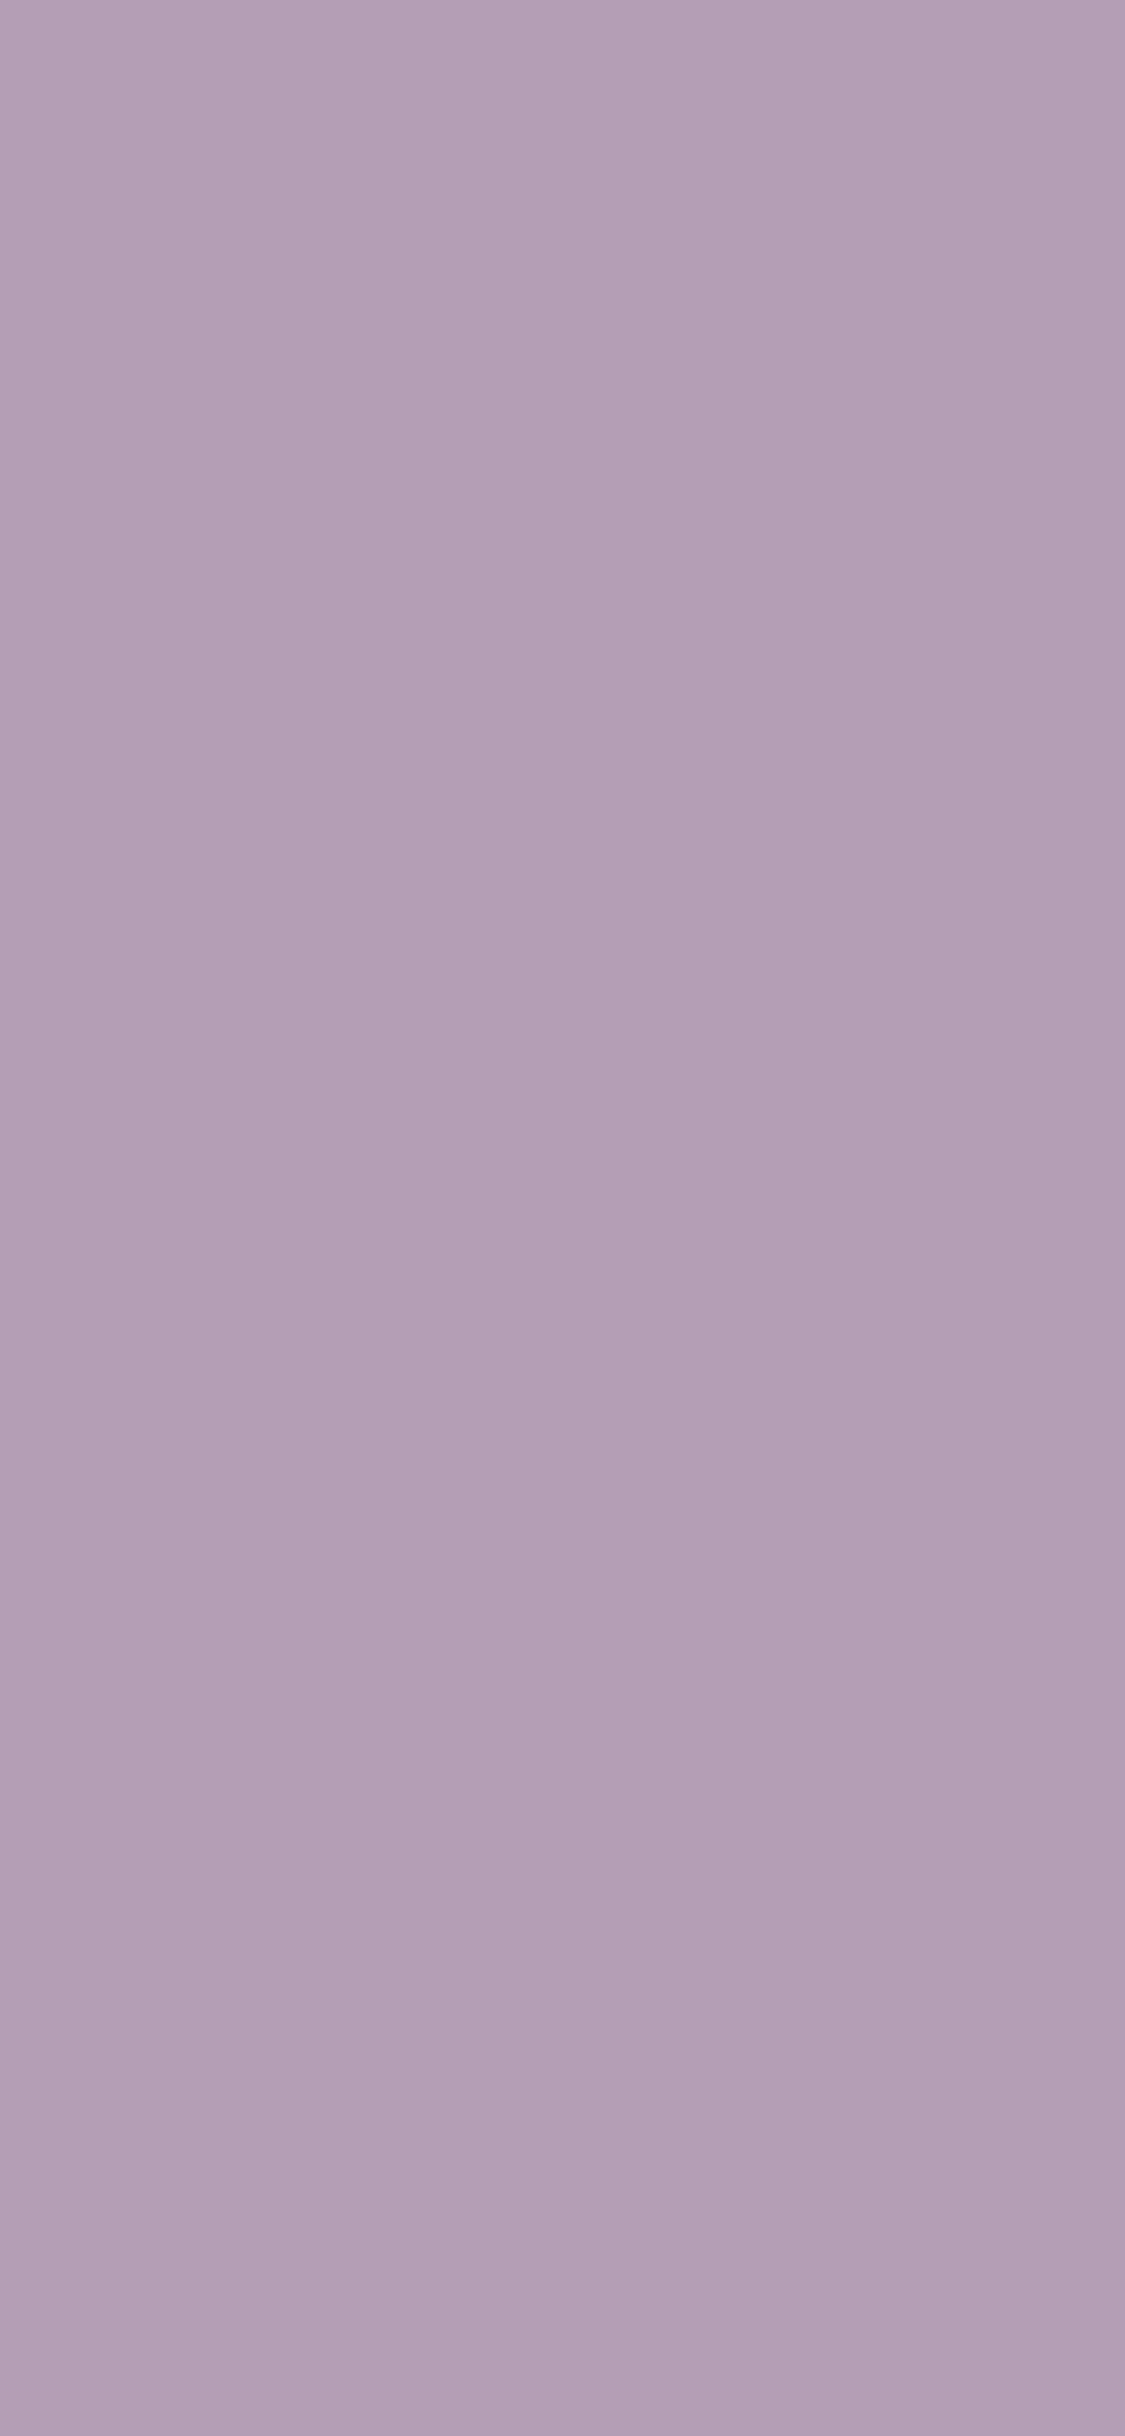 1125x2436 Pastel Purple Solid Color Background